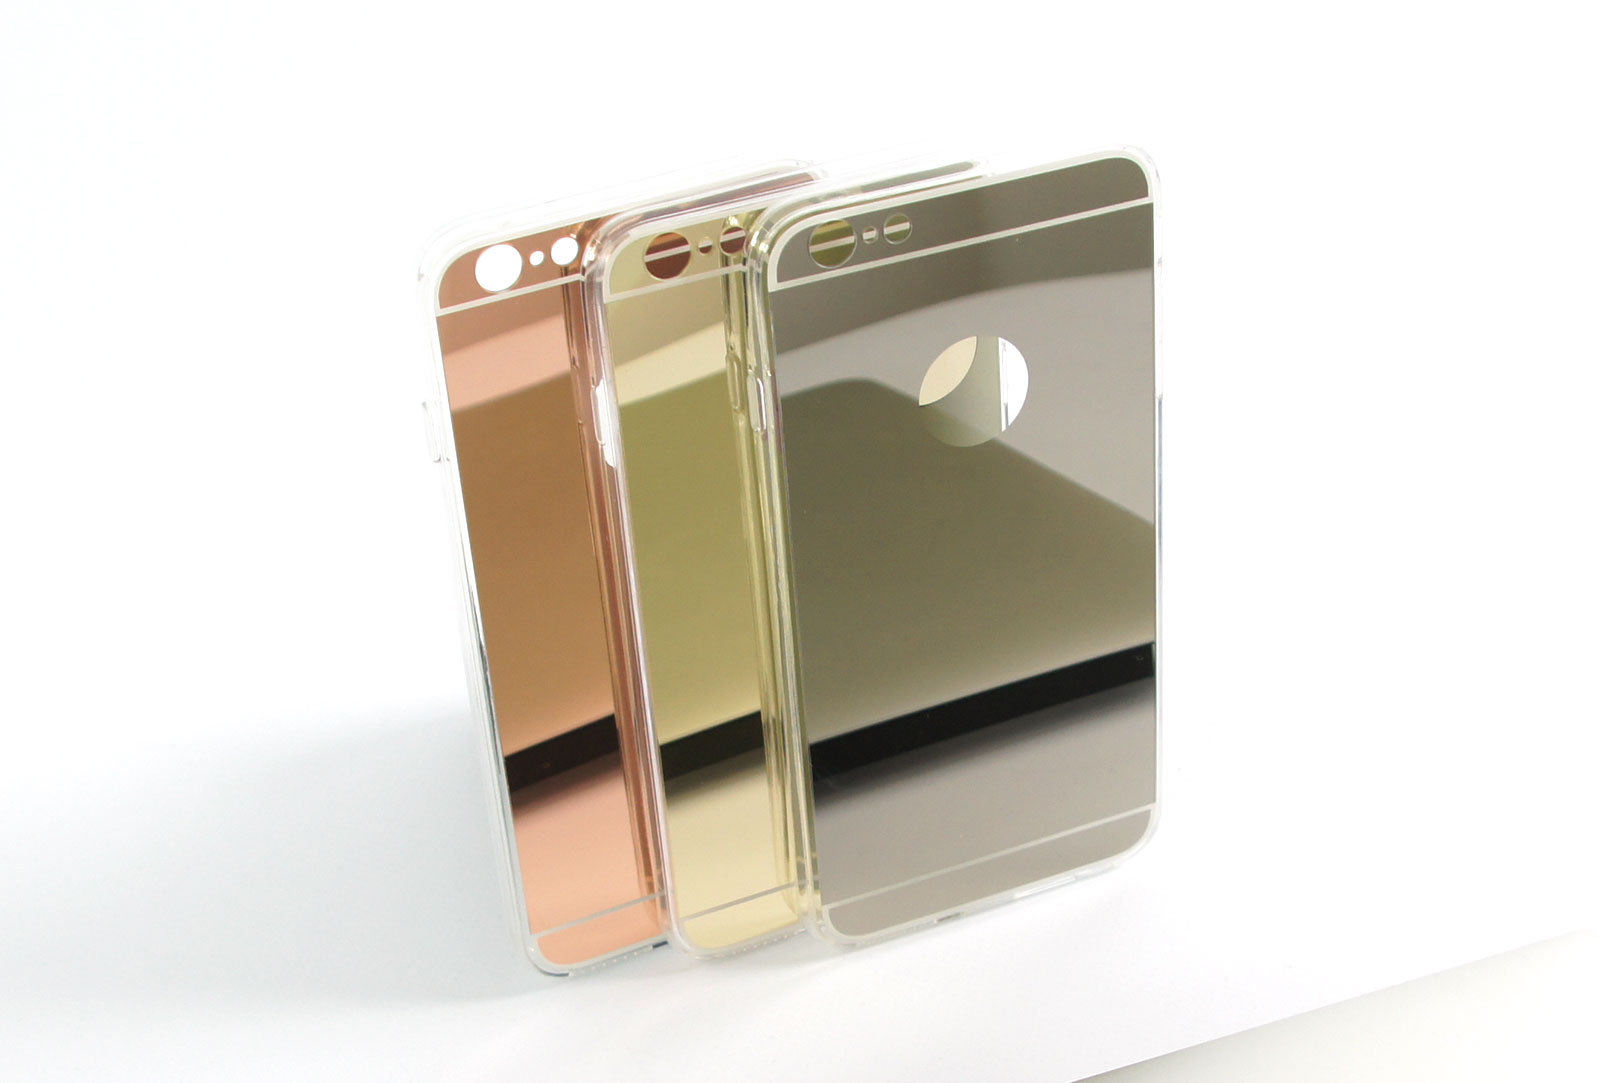 Coque slim miroir or pour iphone 6 s plus et iphone 6 plus for Coque iphone 6 miroir